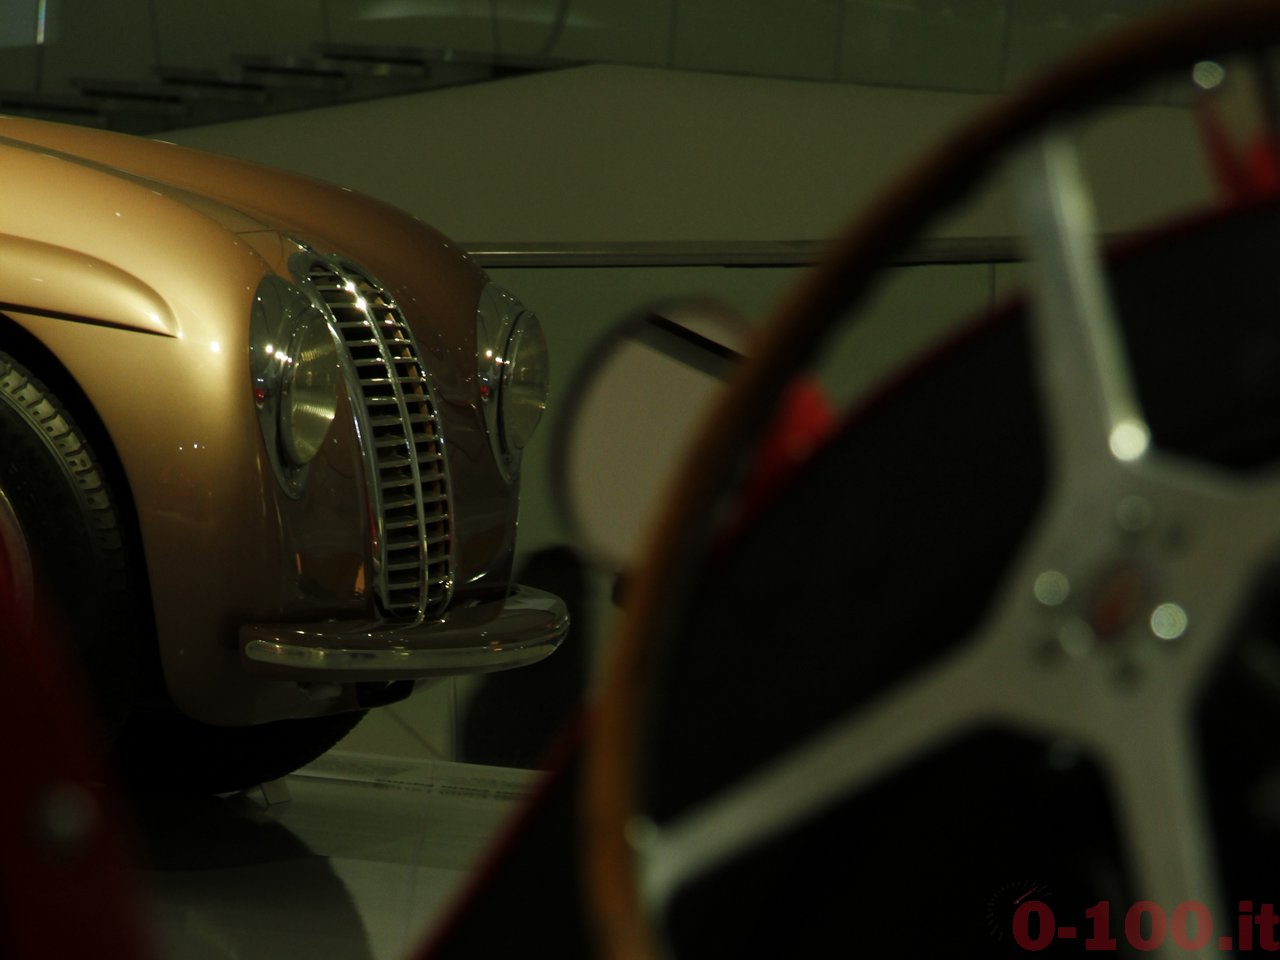 MASERATI-100-Century-Pure-Italian-Luxury-Sports-Cars-0-100_73